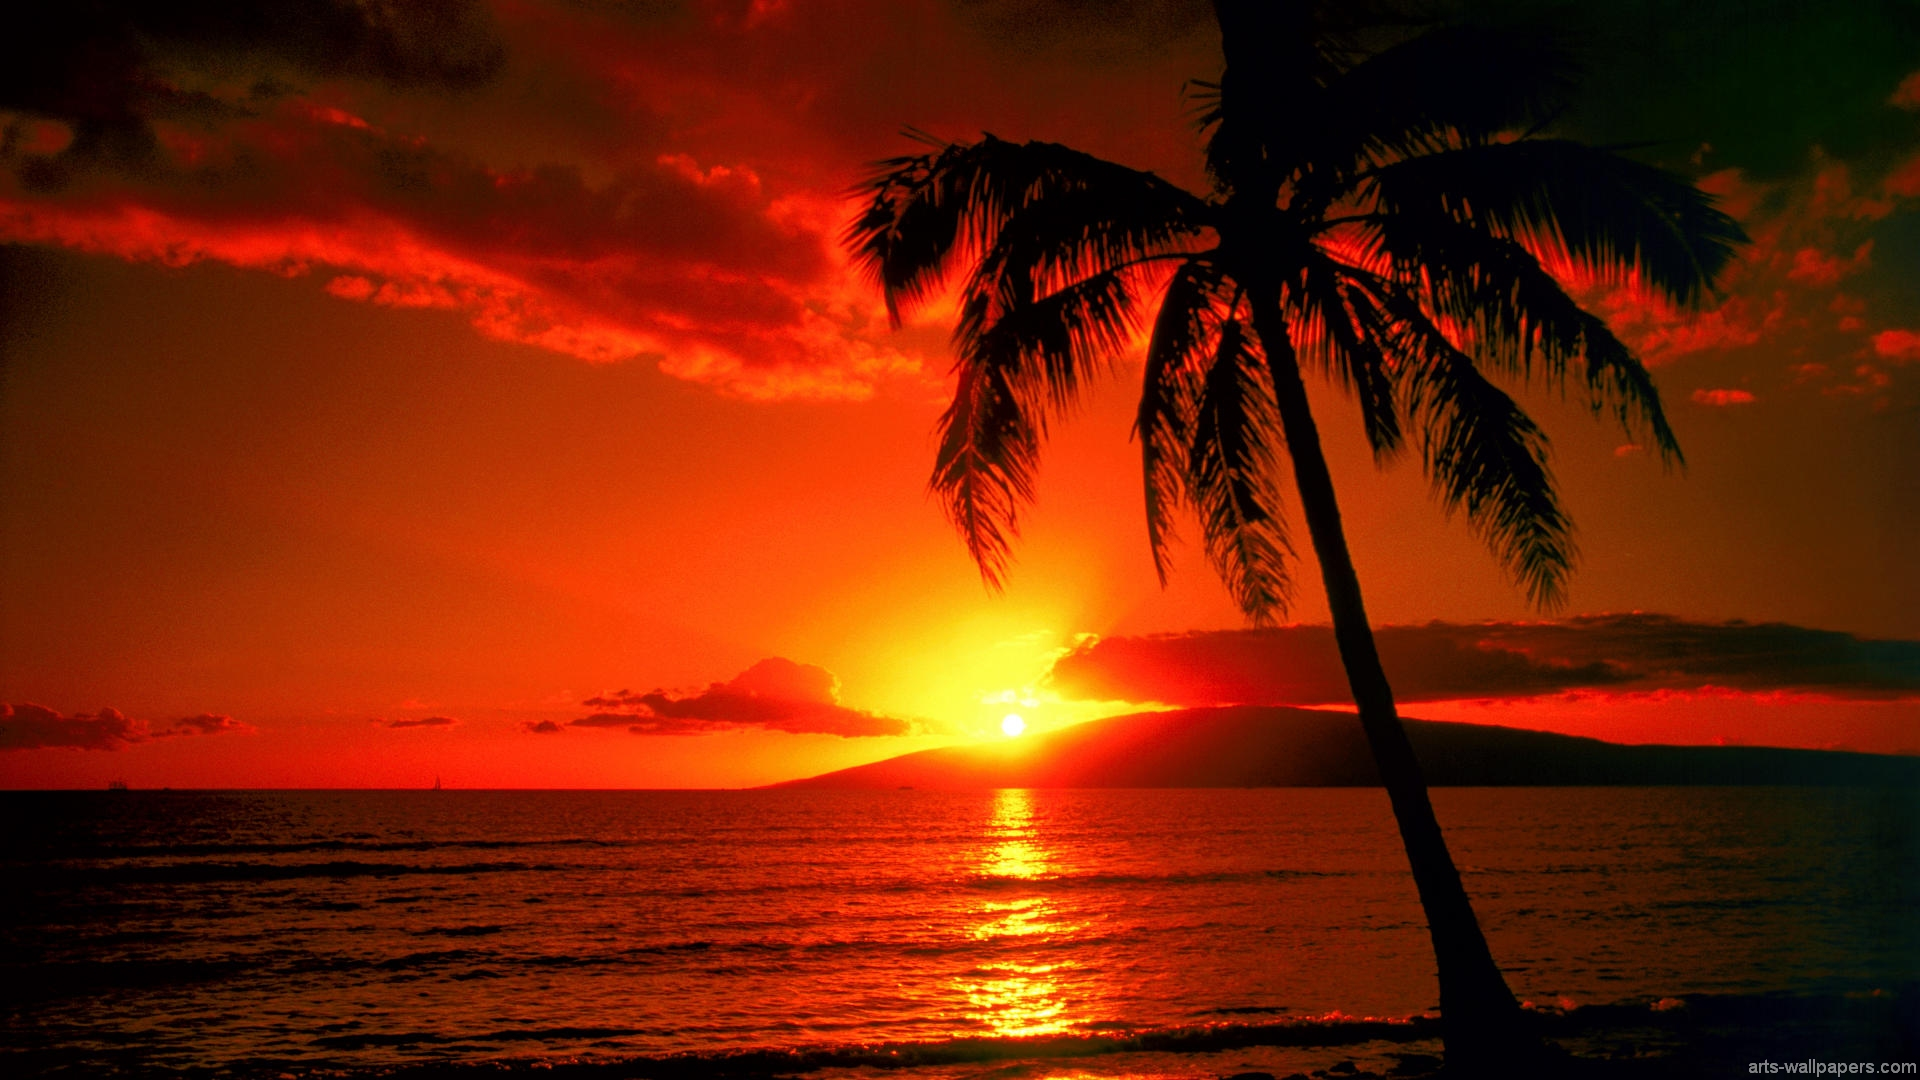 Hd Tropical Island Beach Paradise Wallpapers And Backgrounds: Island HD Wallpapers